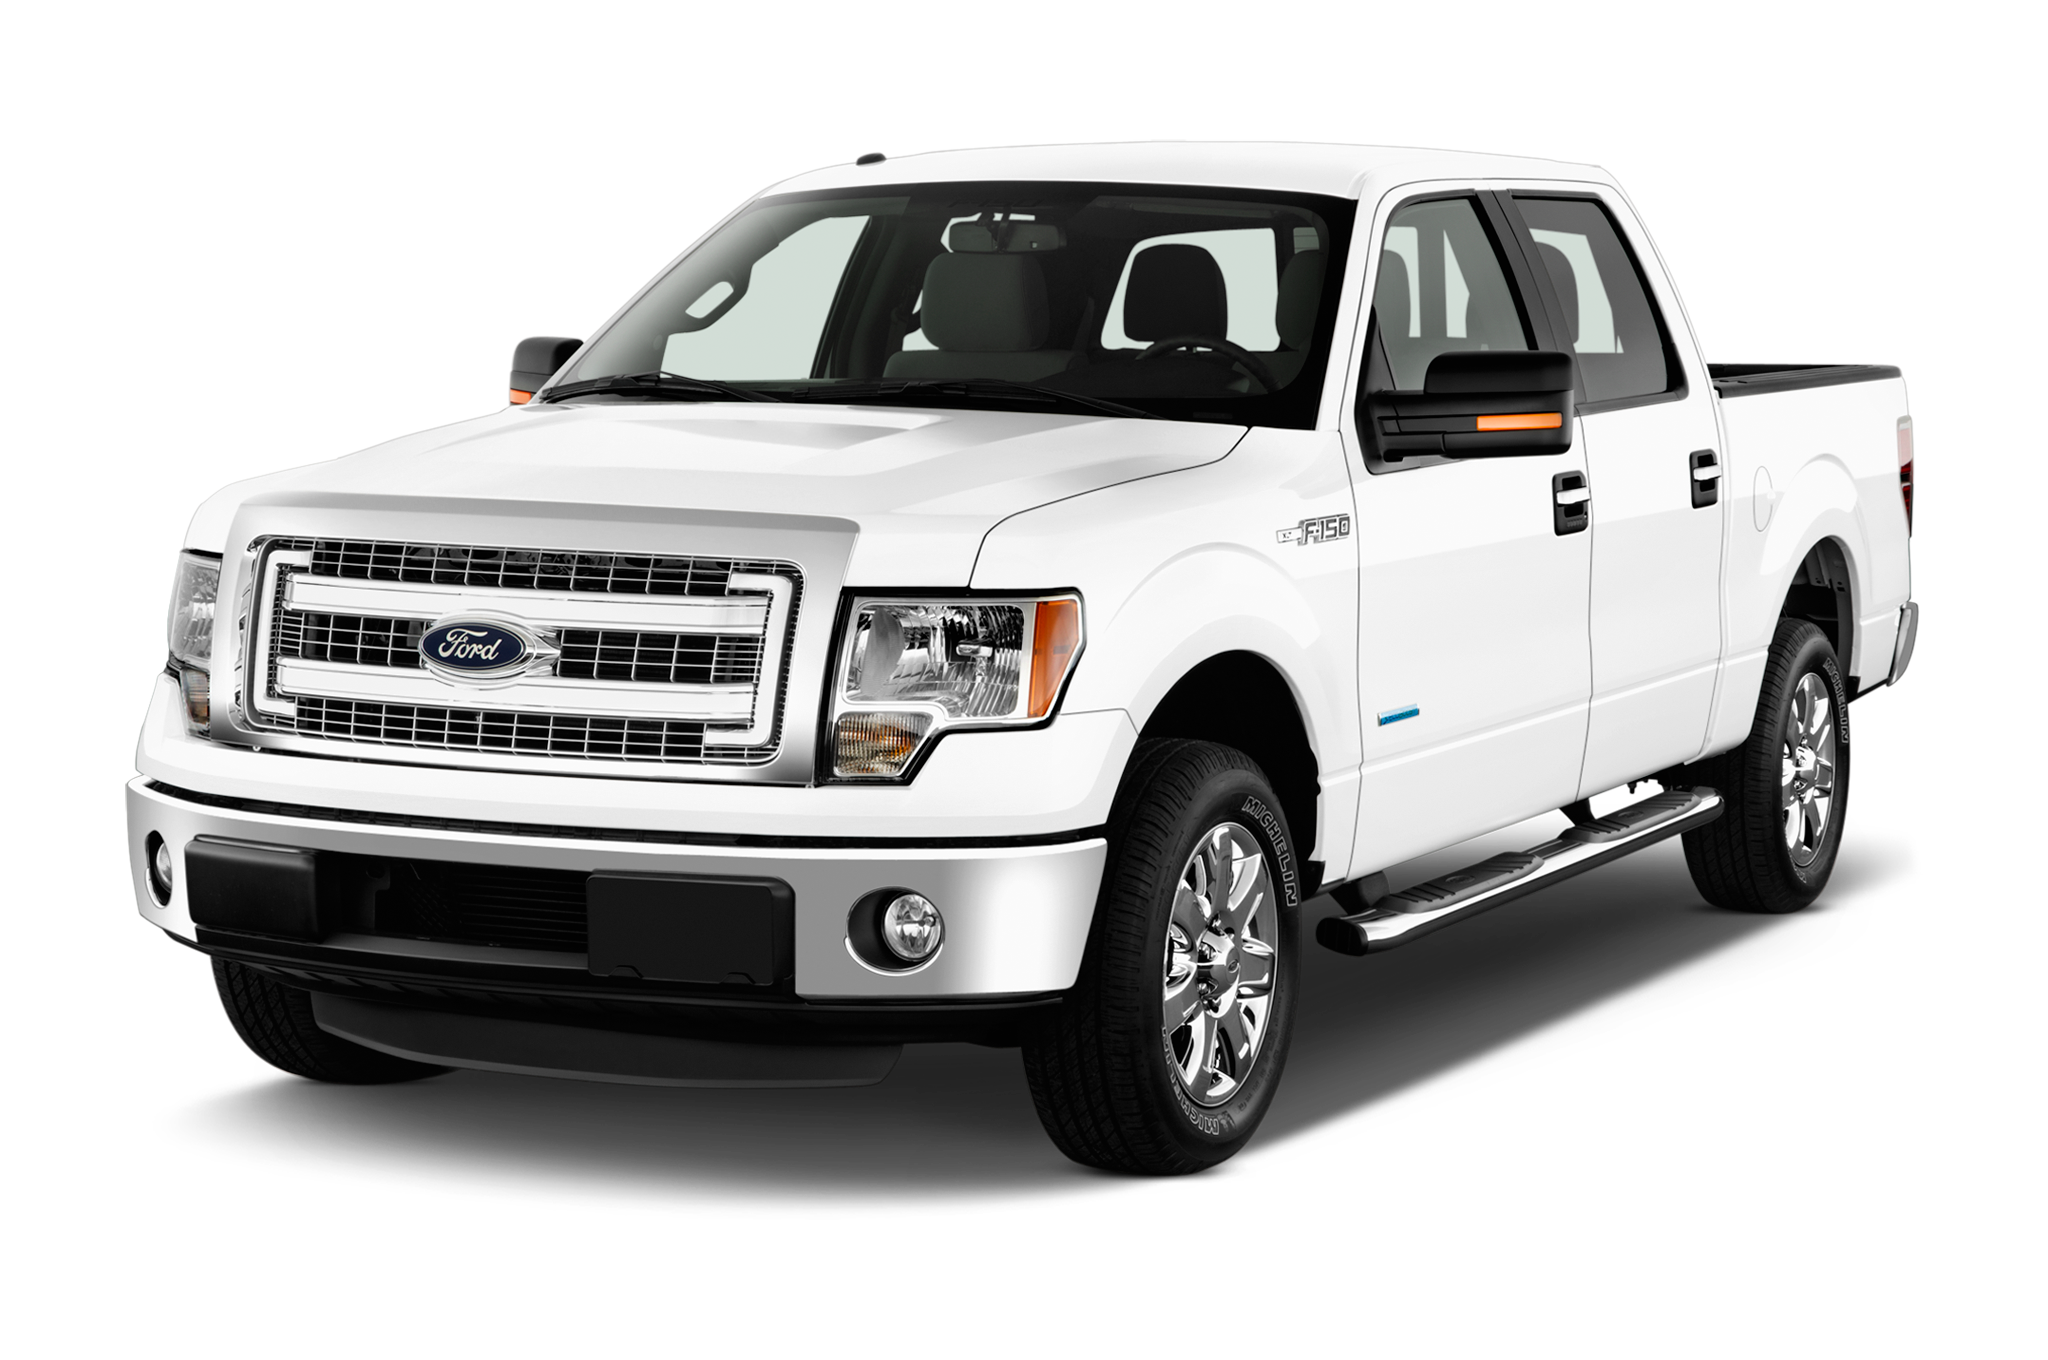 2014 ford f 150 xl 4x4 supercrew 145 in specs and features msn autos. Black Bedroom Furniture Sets. Home Design Ideas